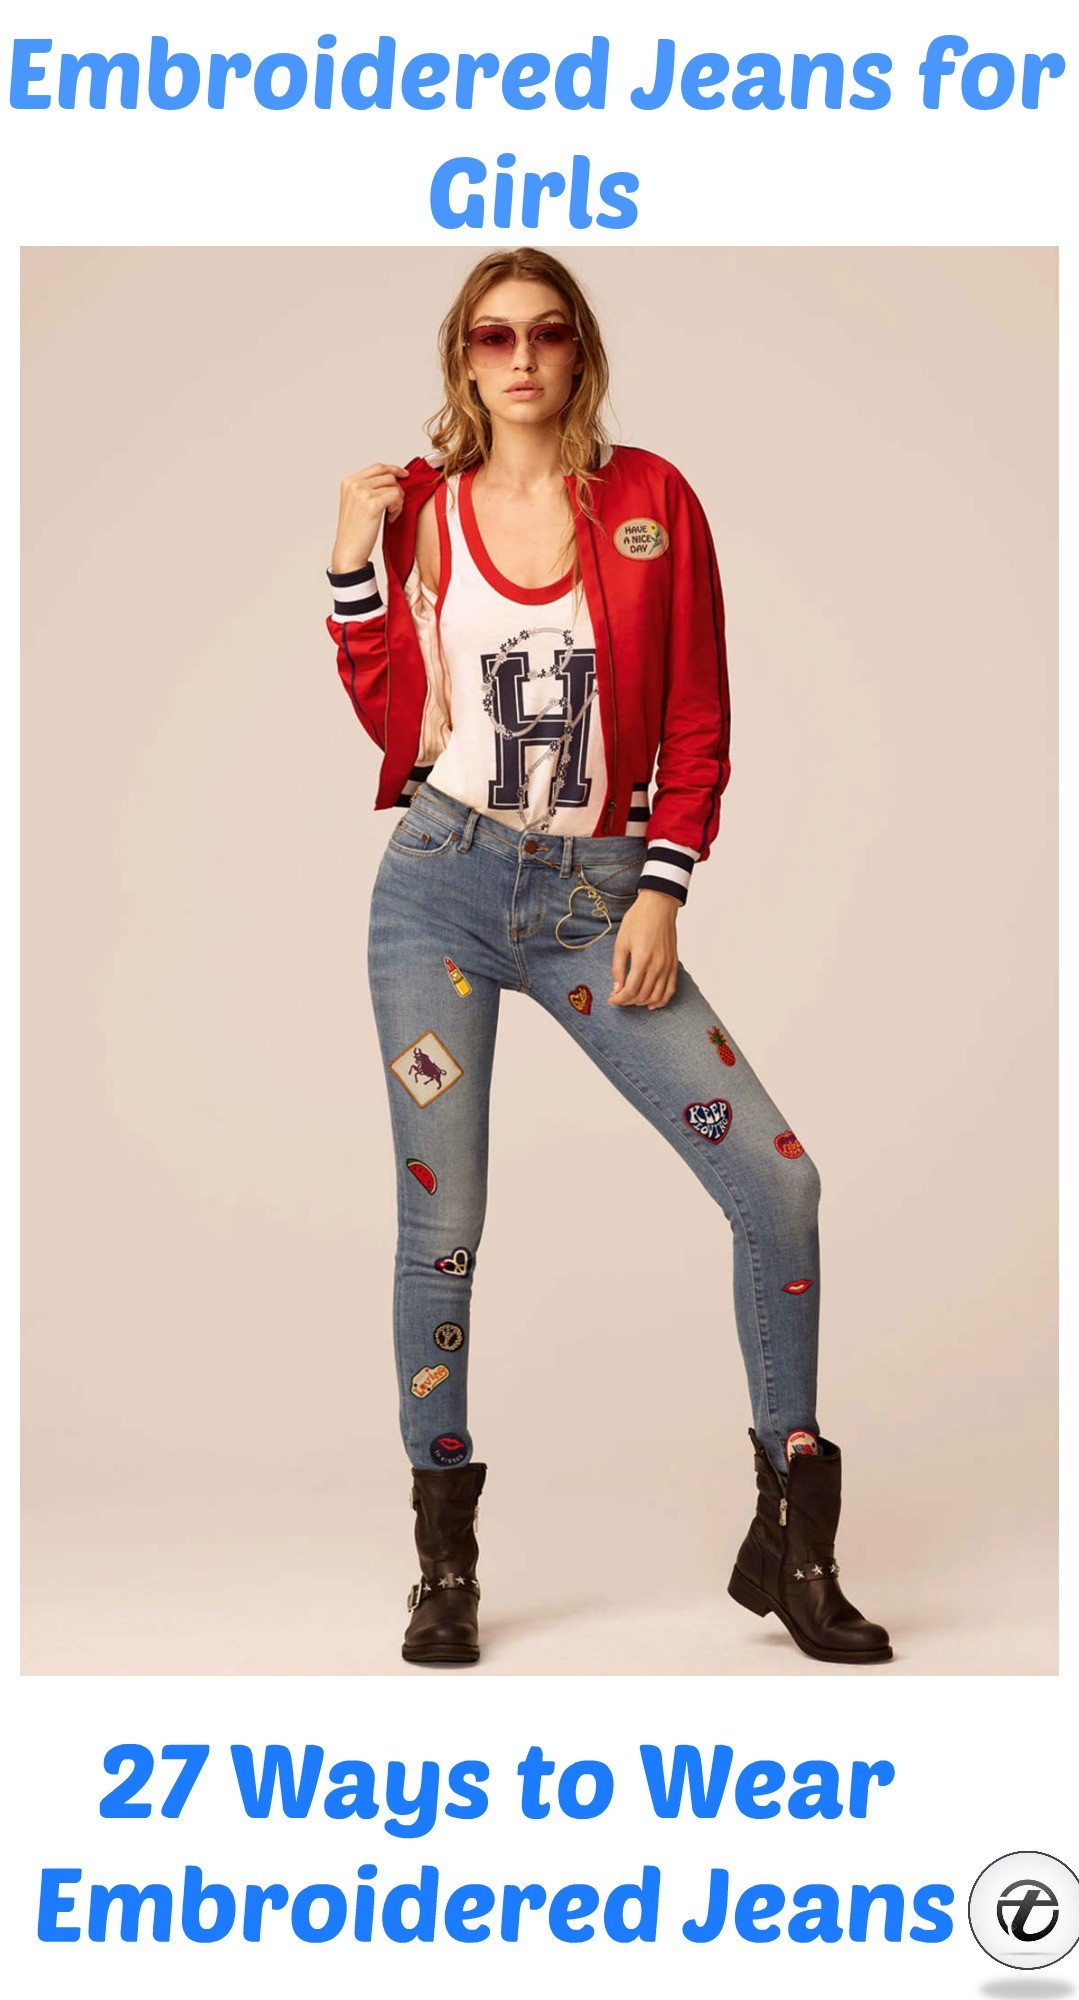 Embroidered Jeans for Girls (1)